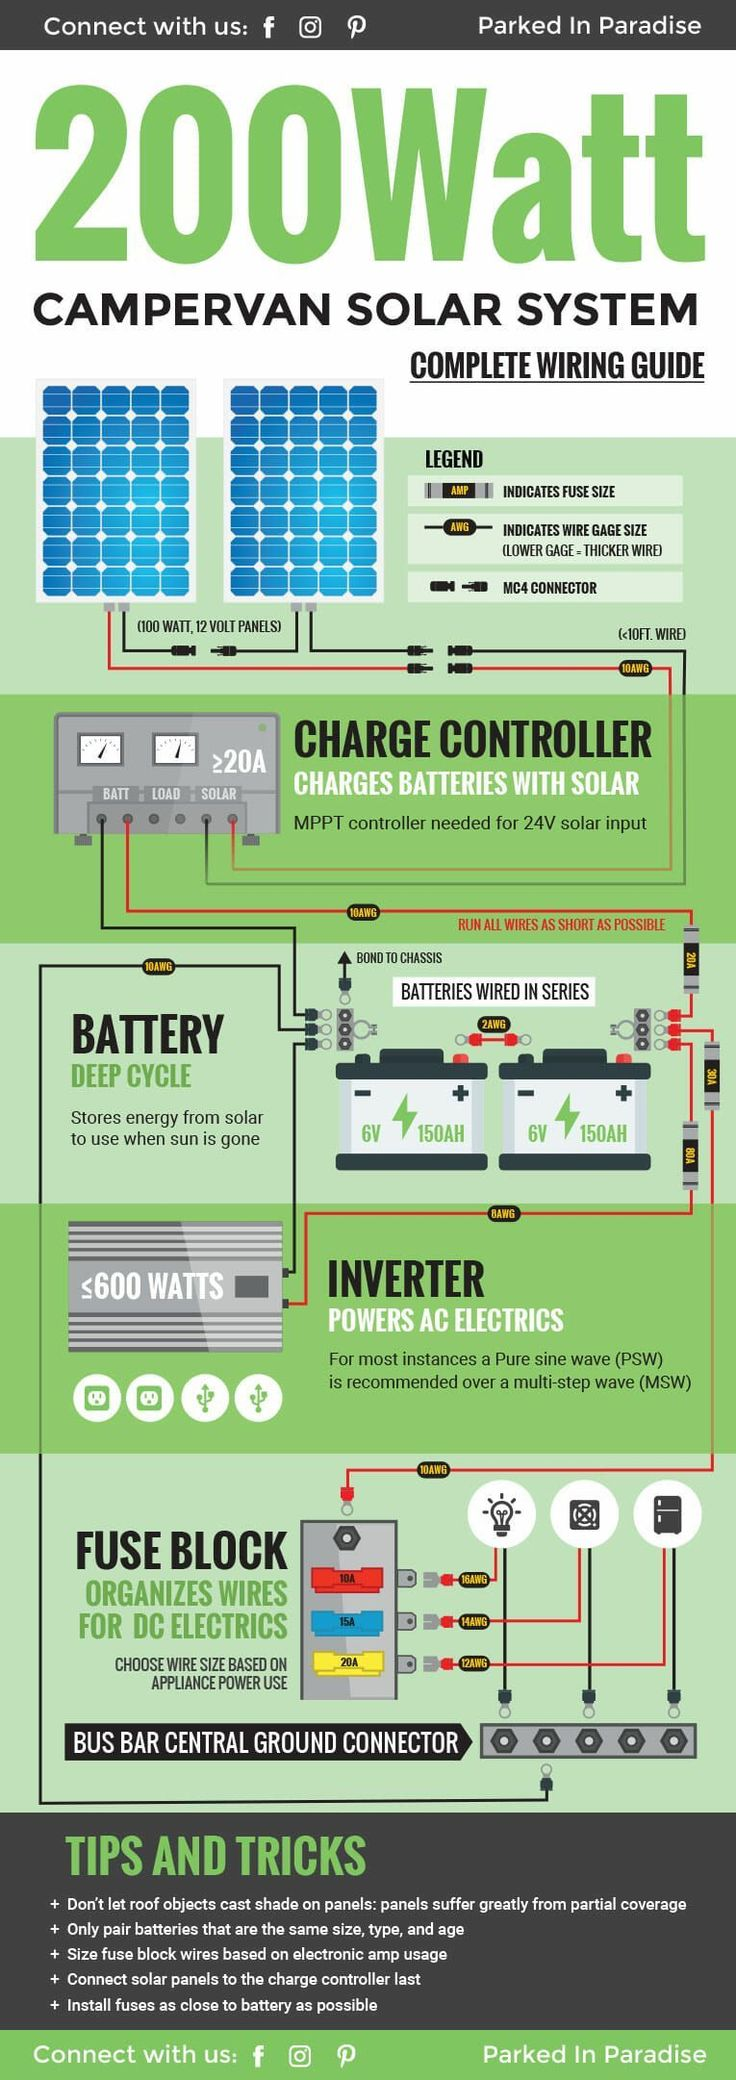 278 Best Airstream Images On Pinterest Campers And 7 Pin Trailer Plug Wiring Diagram Find This More By Nate Hinrichs